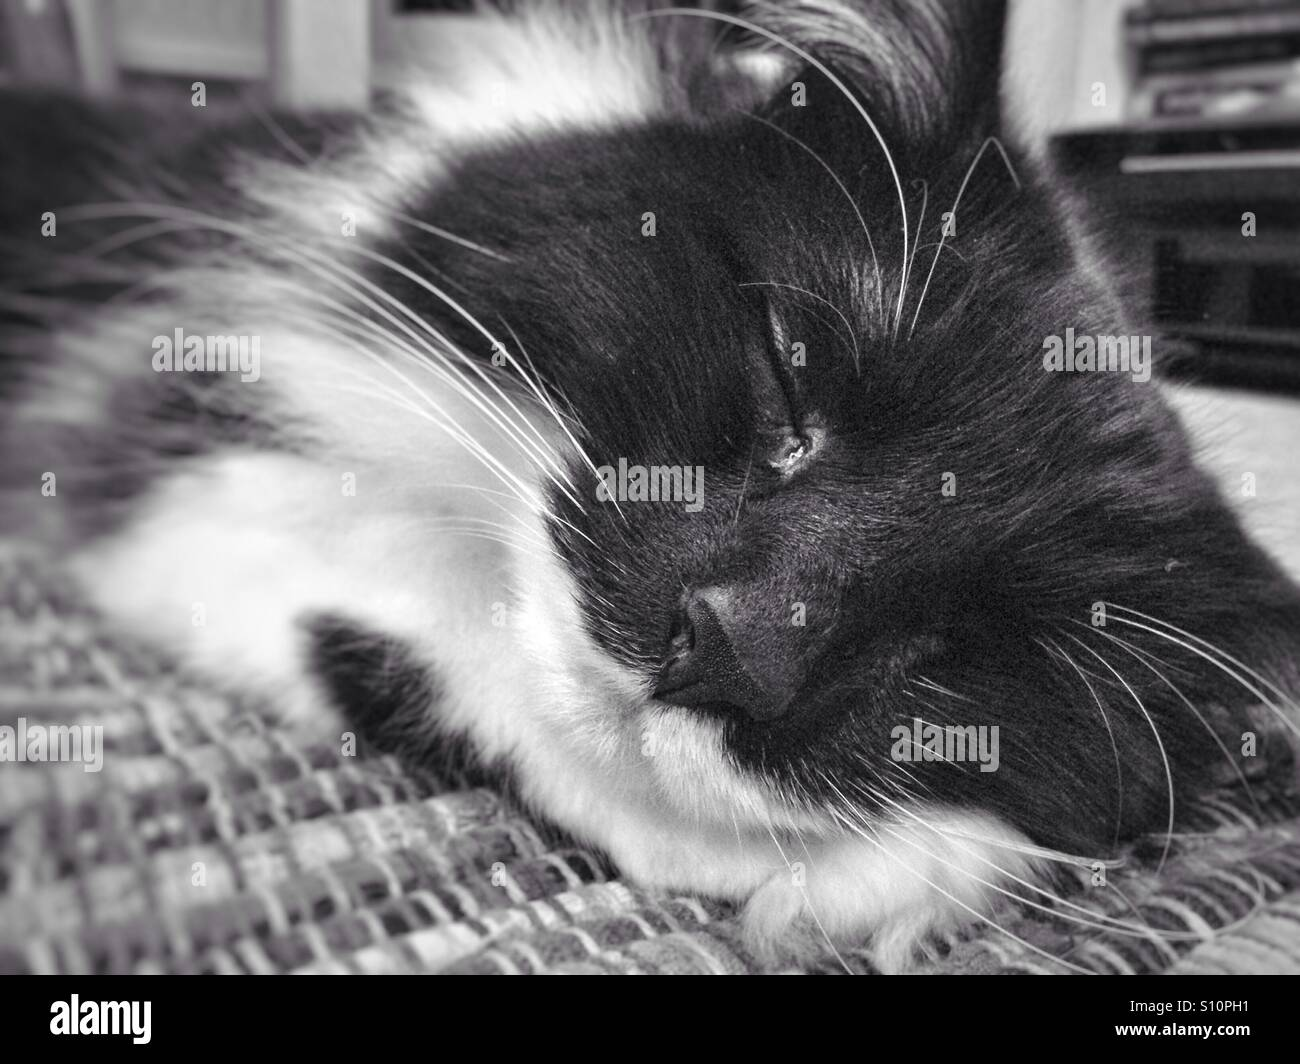 Snoozing cat - Stock Image